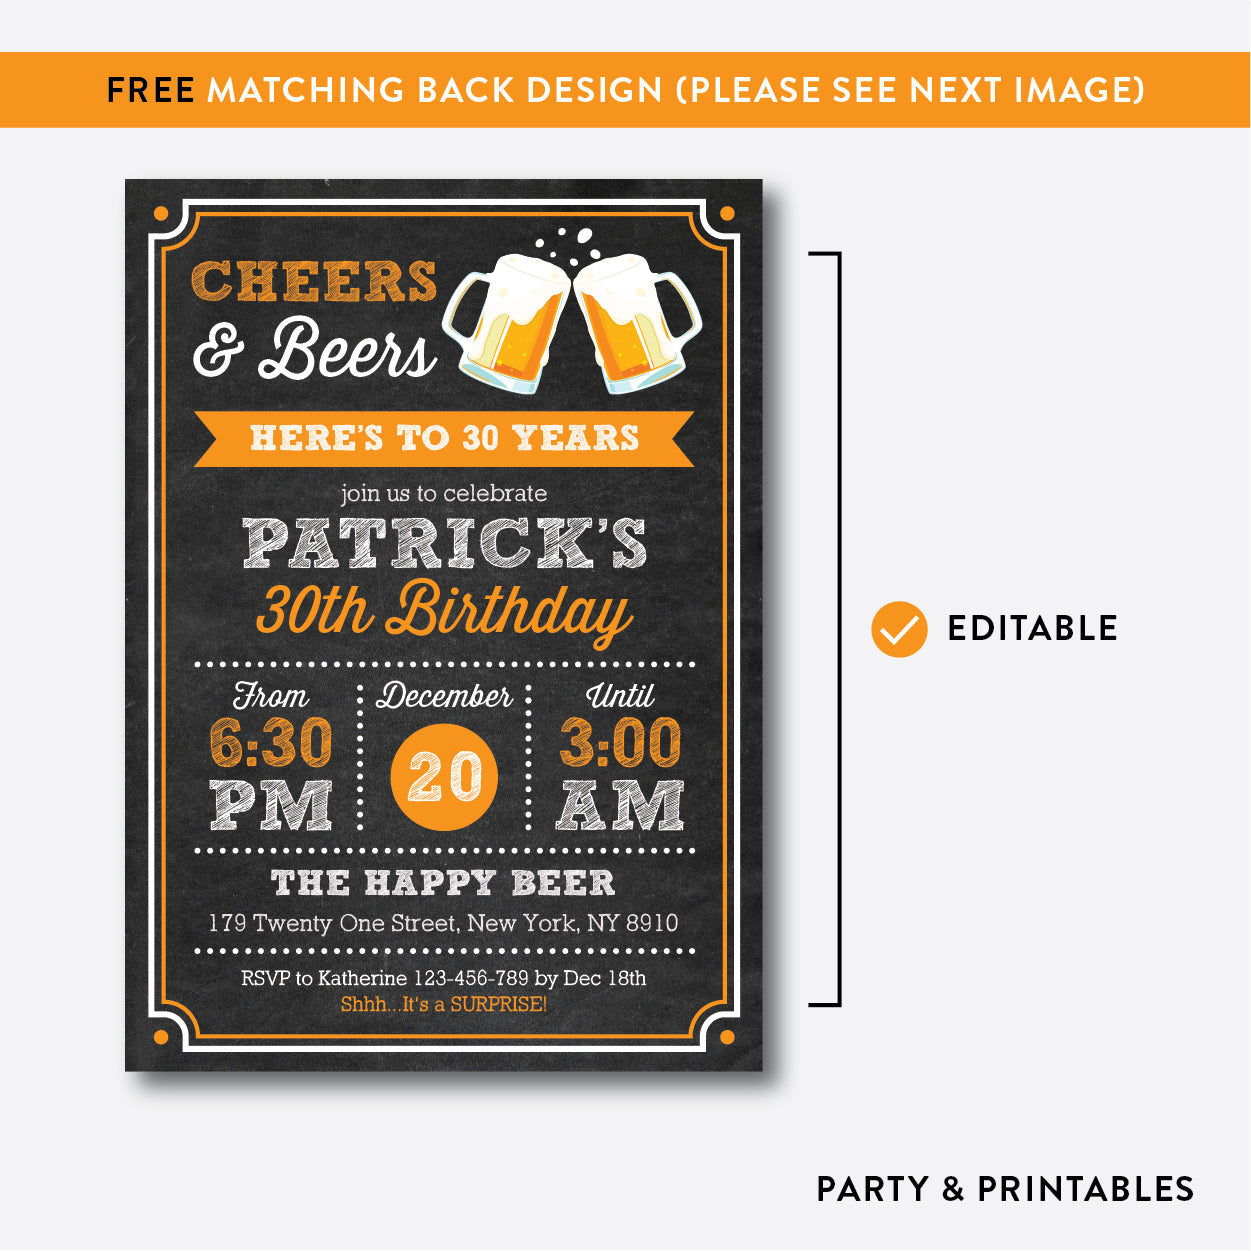 Cheers and beers adult birthday invitation editable instant cheers and beers adult birthday invitation editable instant download cab06 filmwisefo Image collections